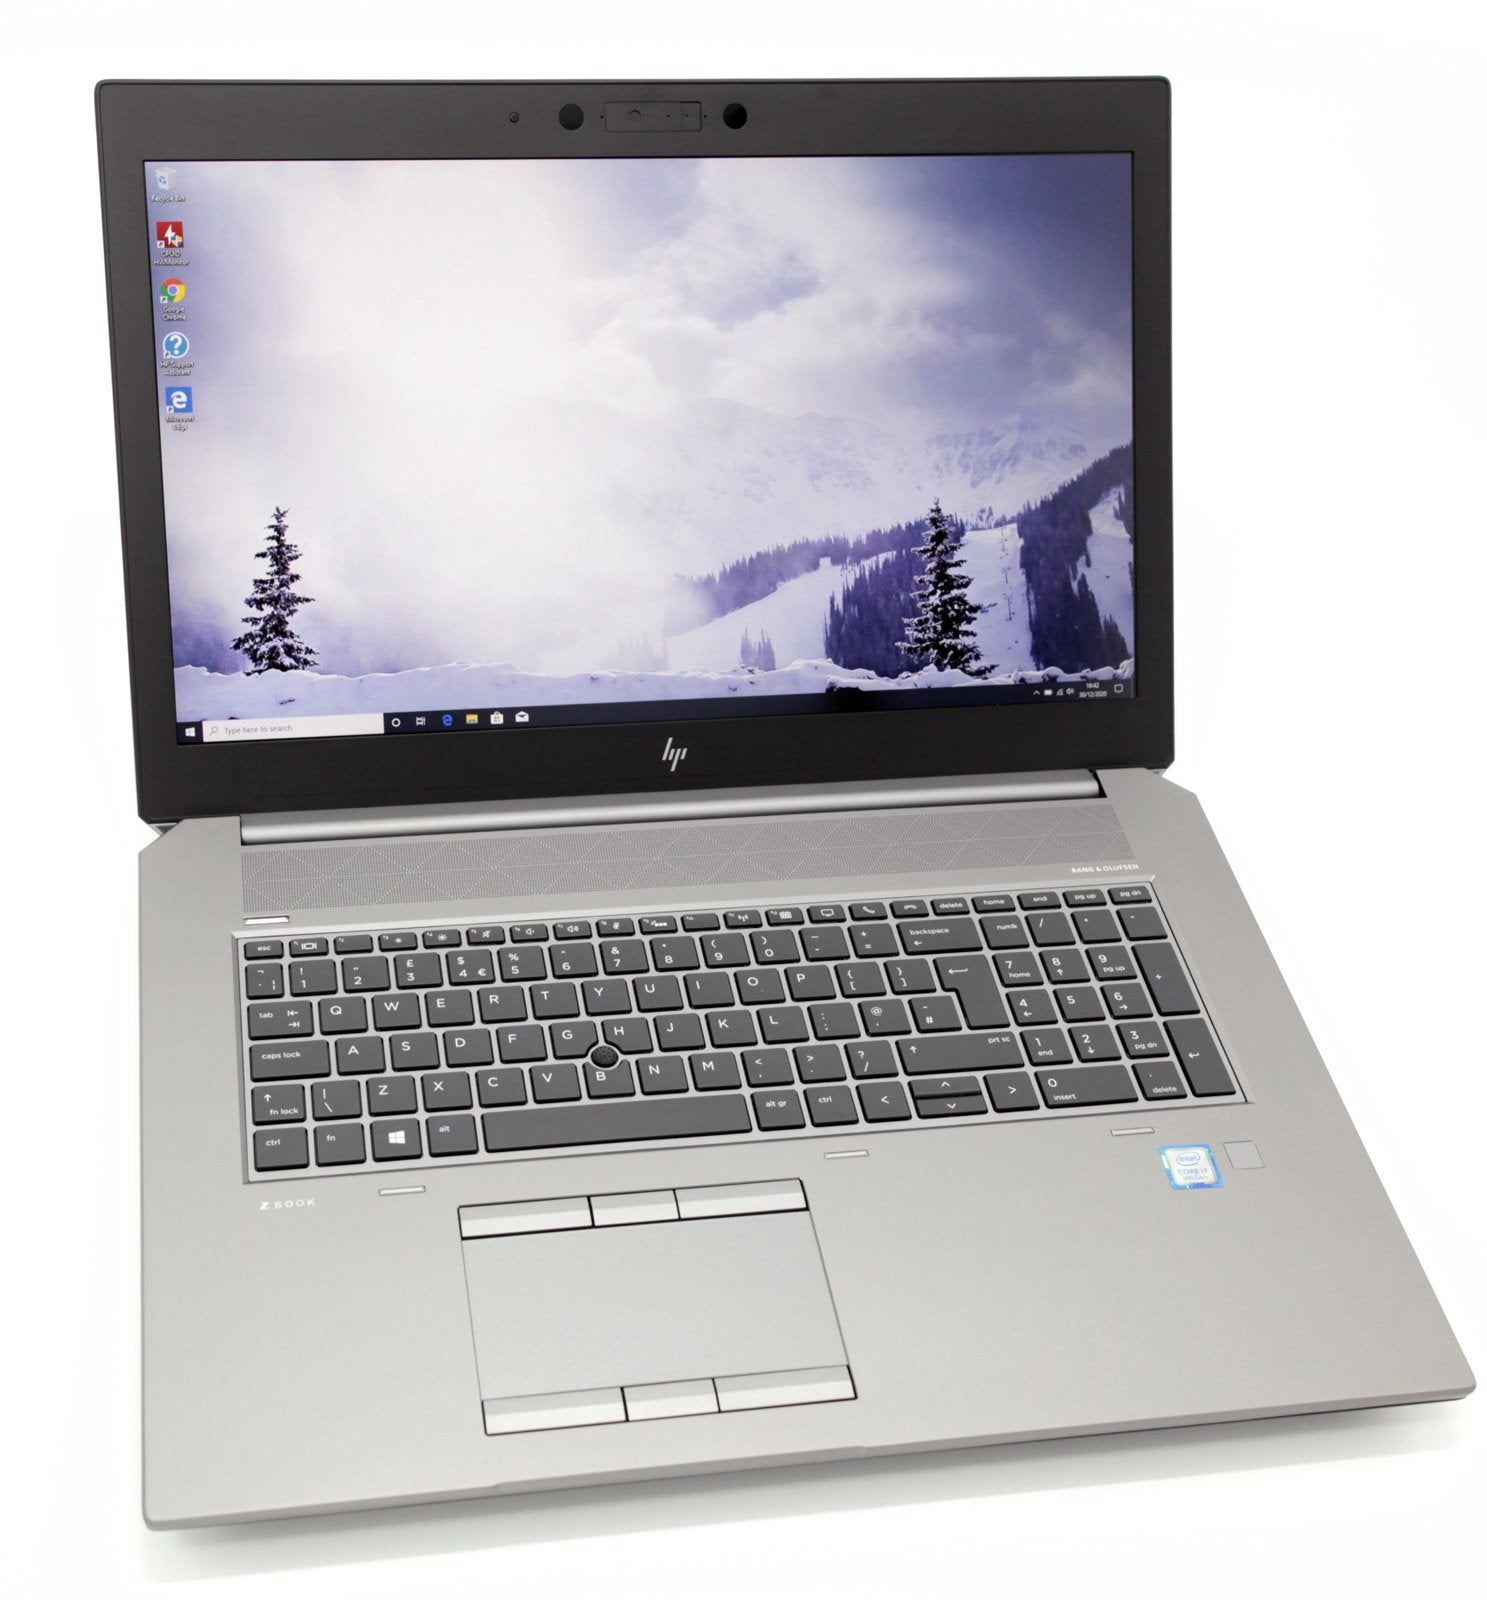 HP ZBook 17 G6 CAD Laptop: i7-9750H, RTX 4000, 32GB RAM, 1TB SSD +HDD, Warranty - CruiseTech